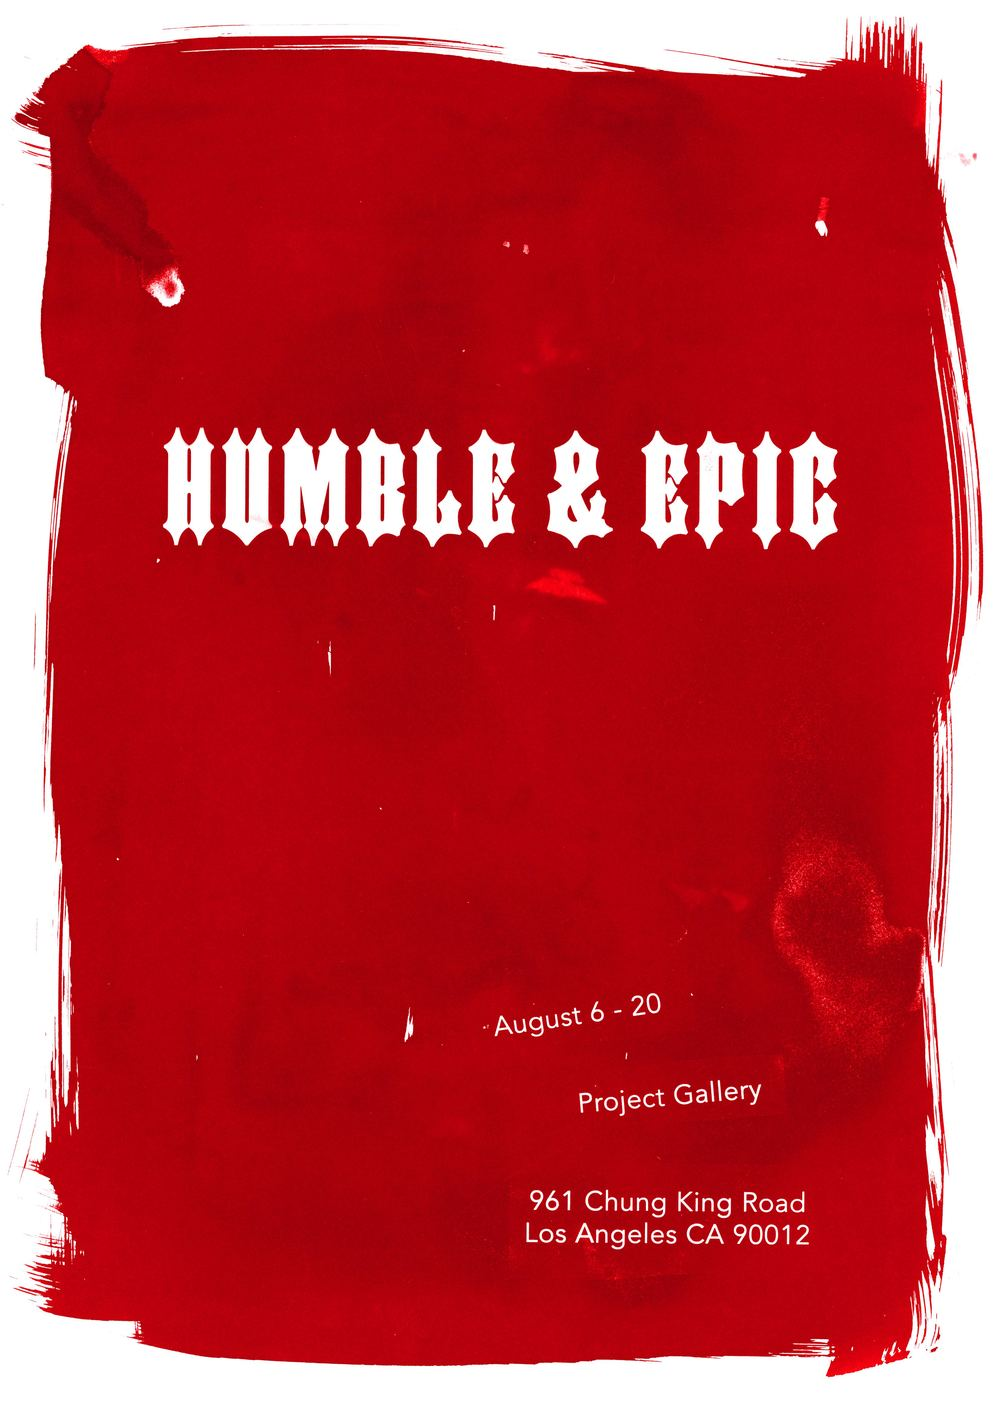 HUMBLE_EPIC_RED_200dpi.jpg